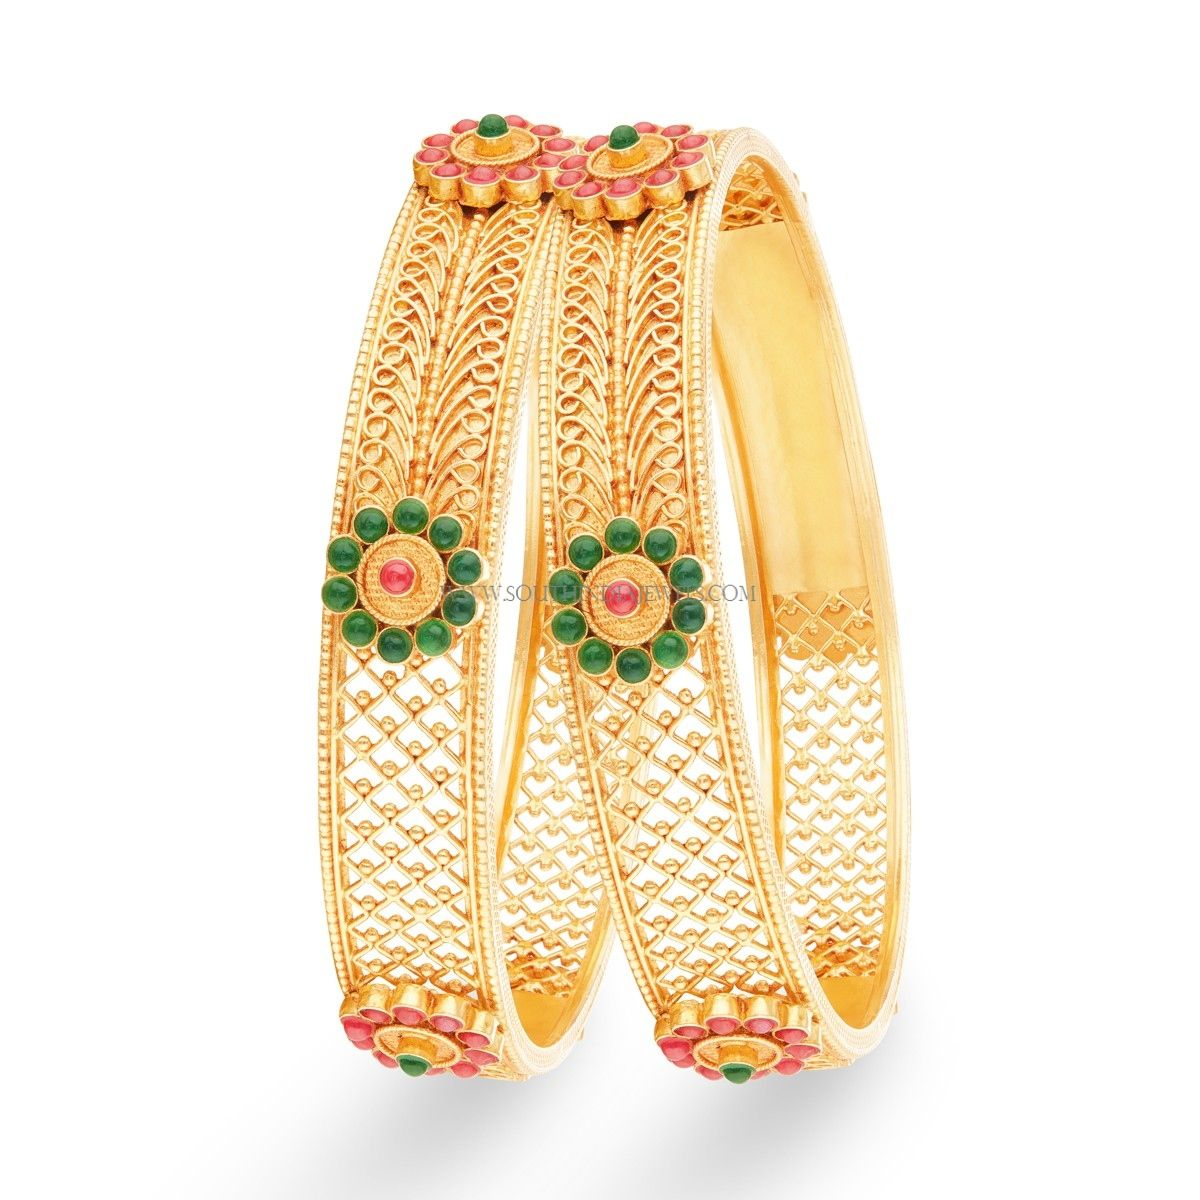 Gold Bangle (Kangan) Designs with Price and Weight | i ...